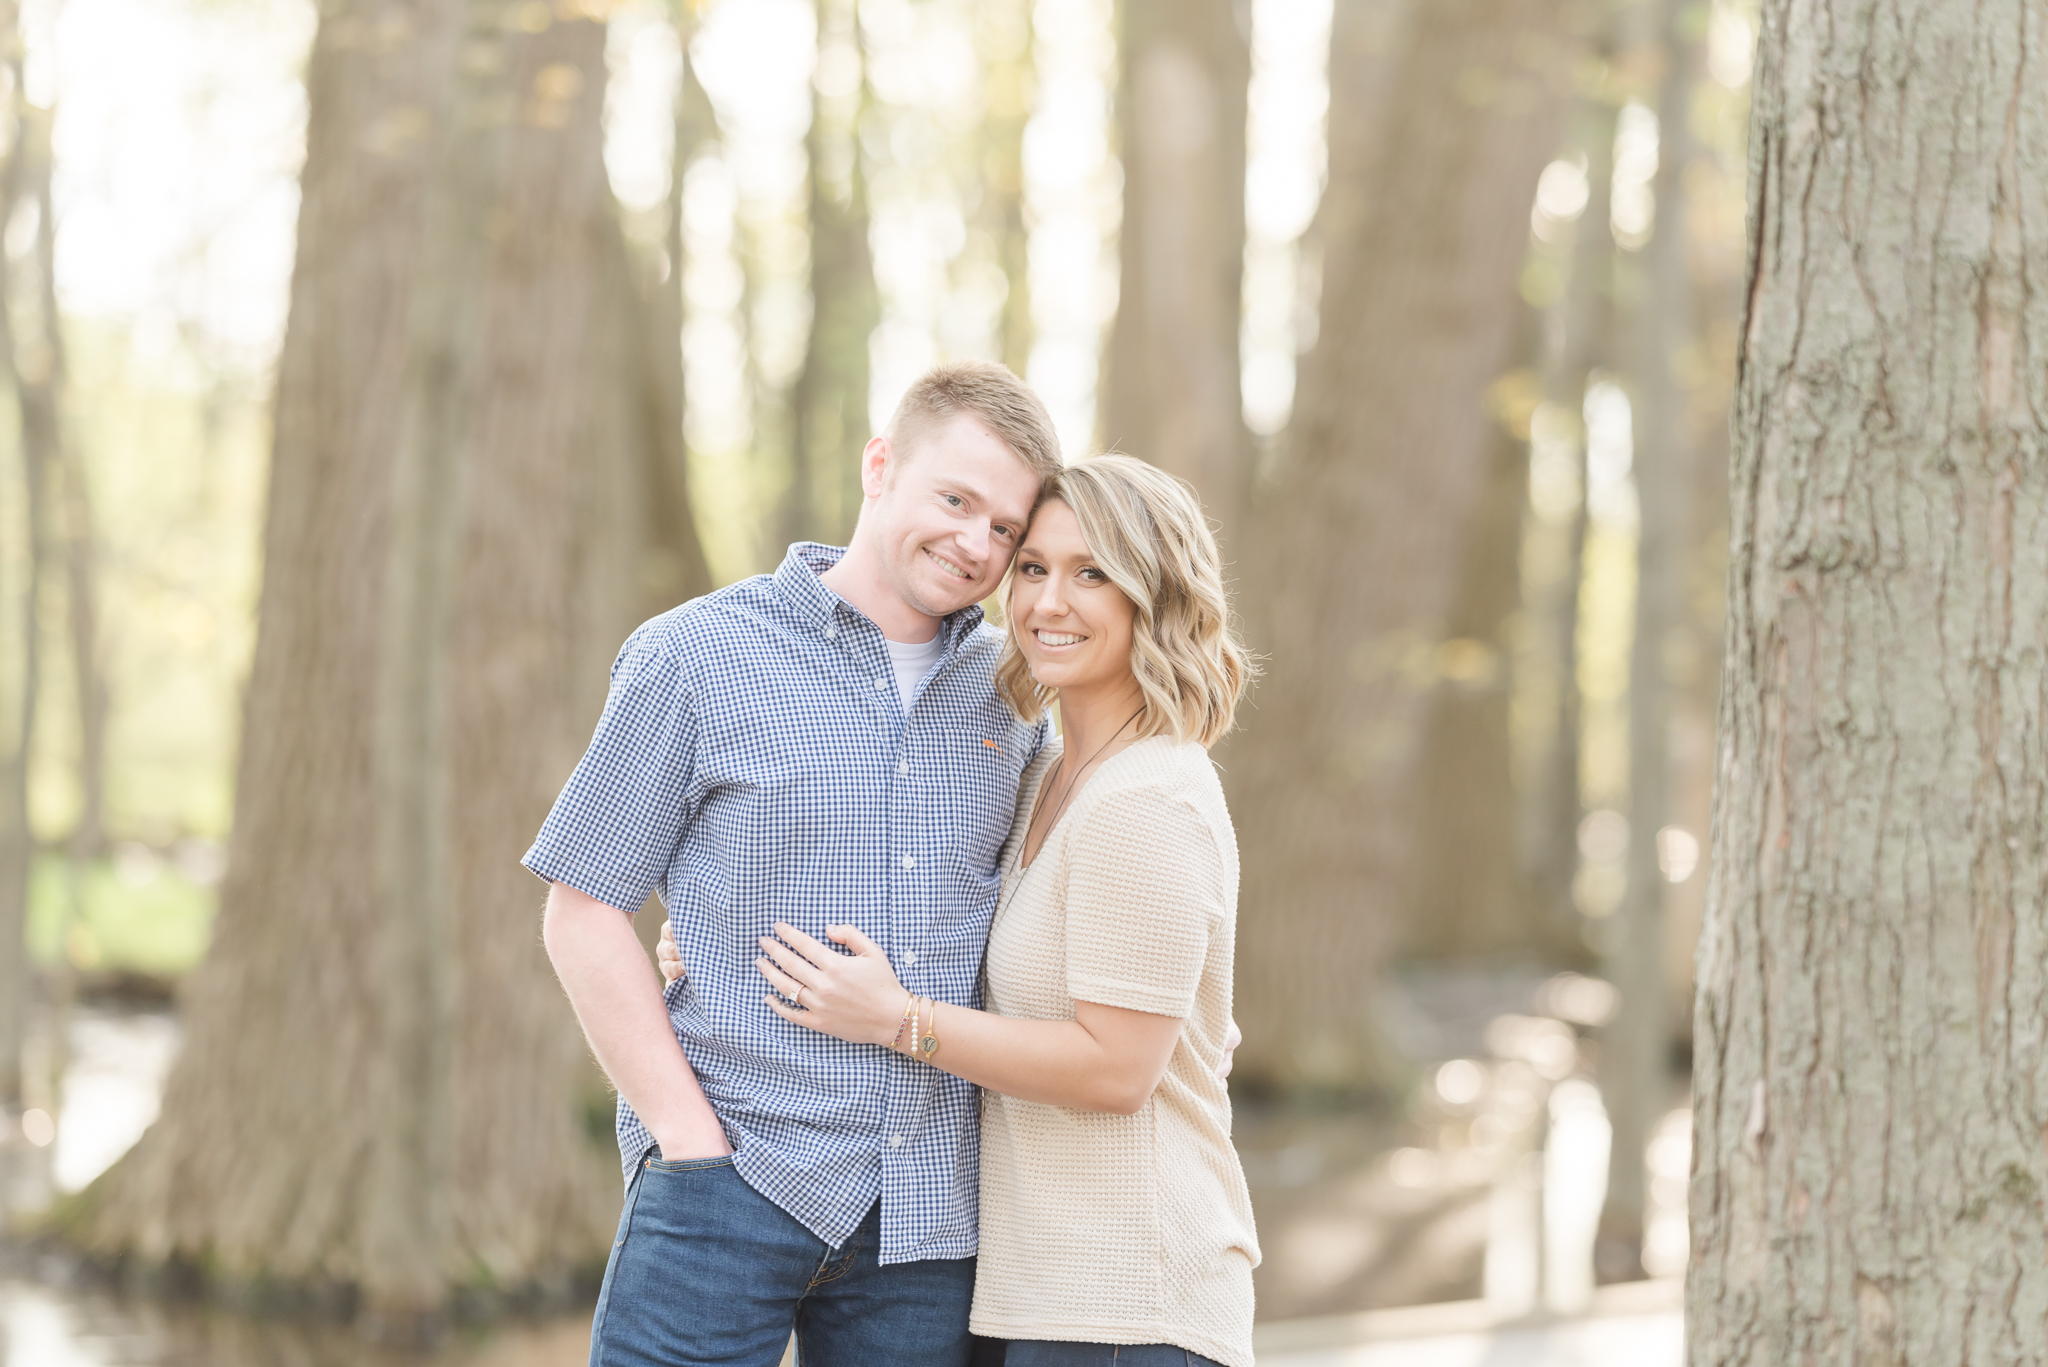 Richie Woods Nature Preserve and Mustard Seed Gardens Engagement Session Wedding Photos-6.jpg